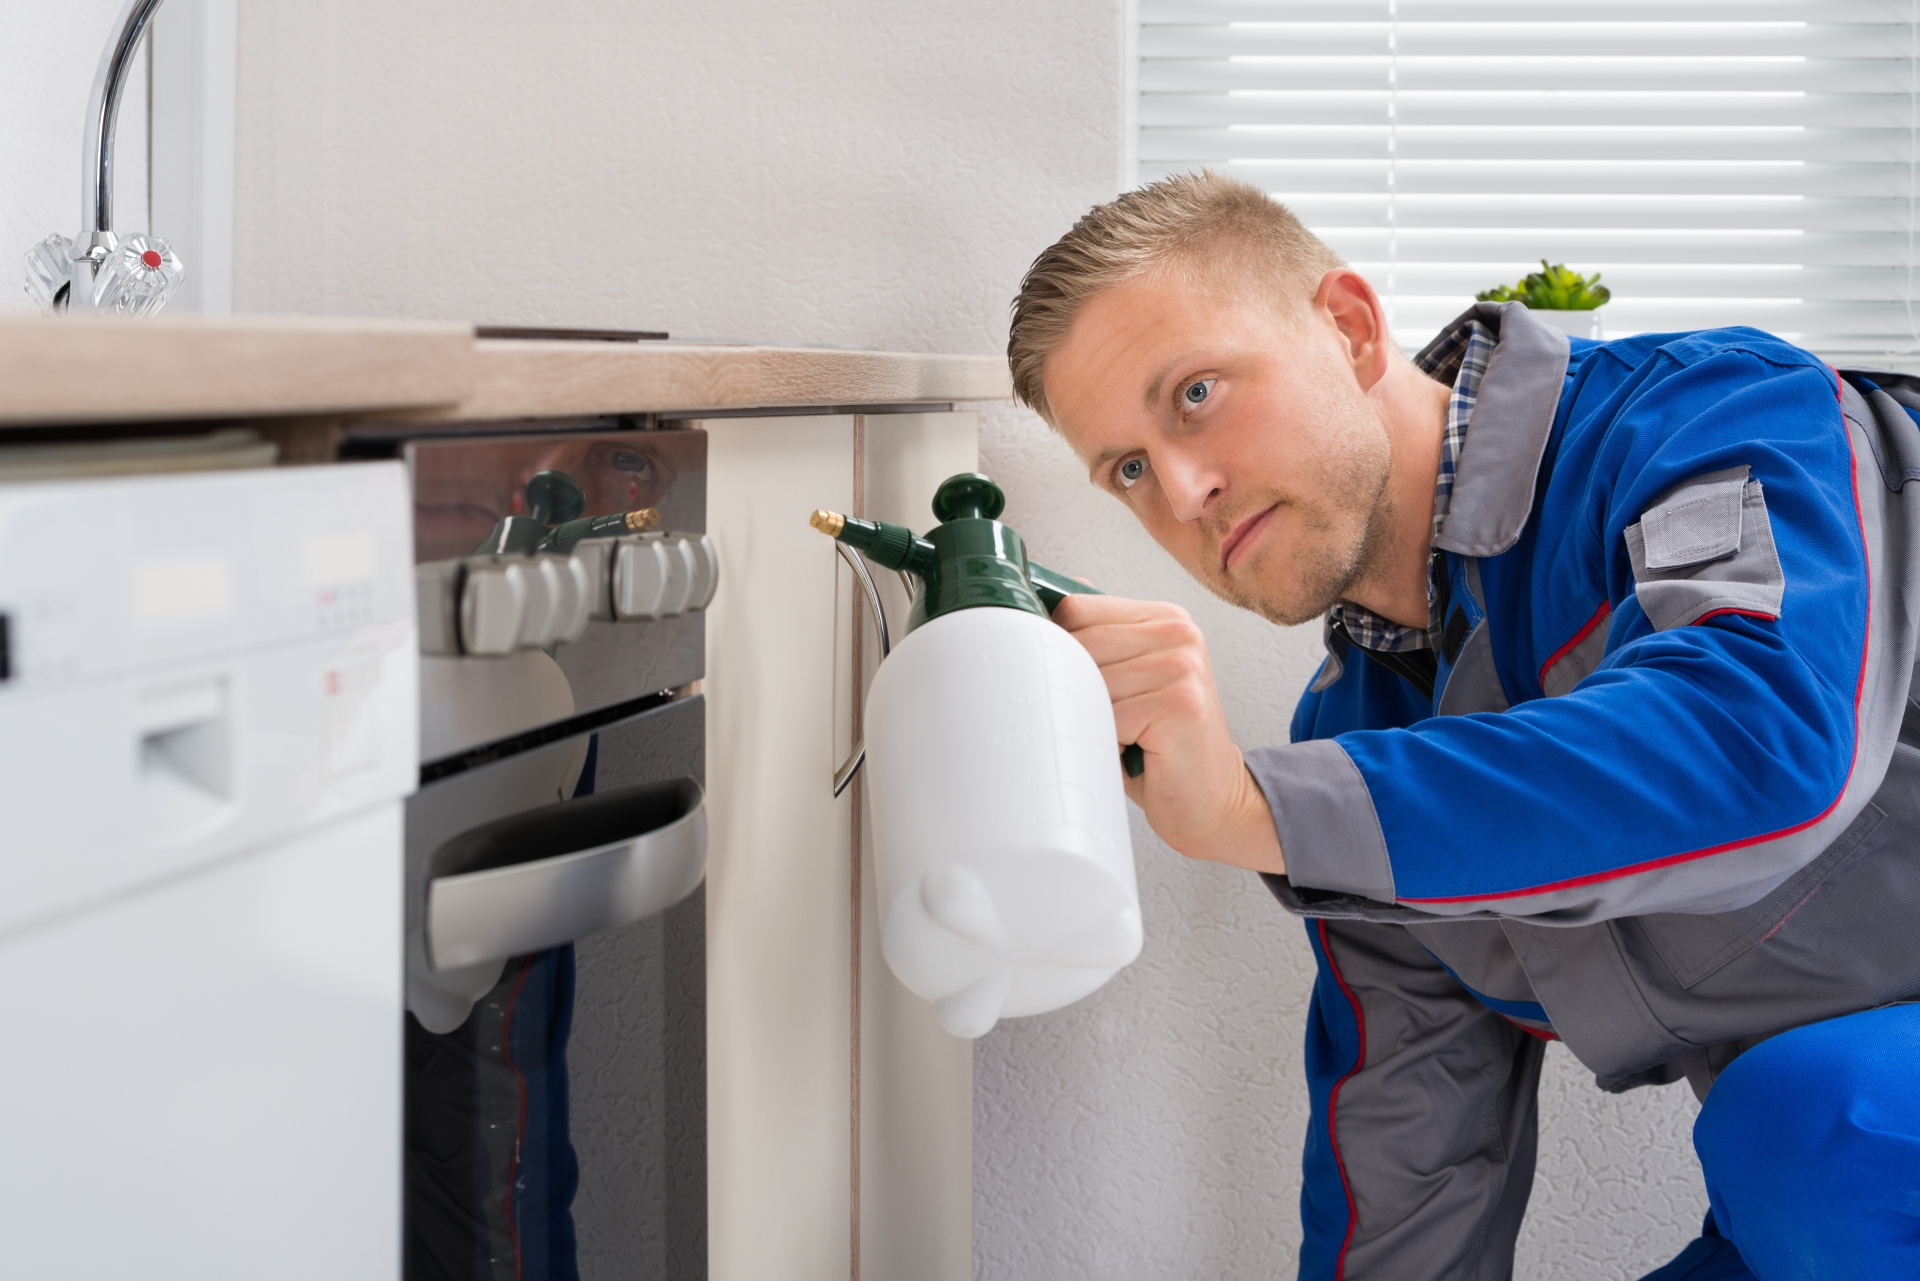 Pest Inspection, Pest Control in West Brompton, World's End, SW10. Call Now 020 8166 9746